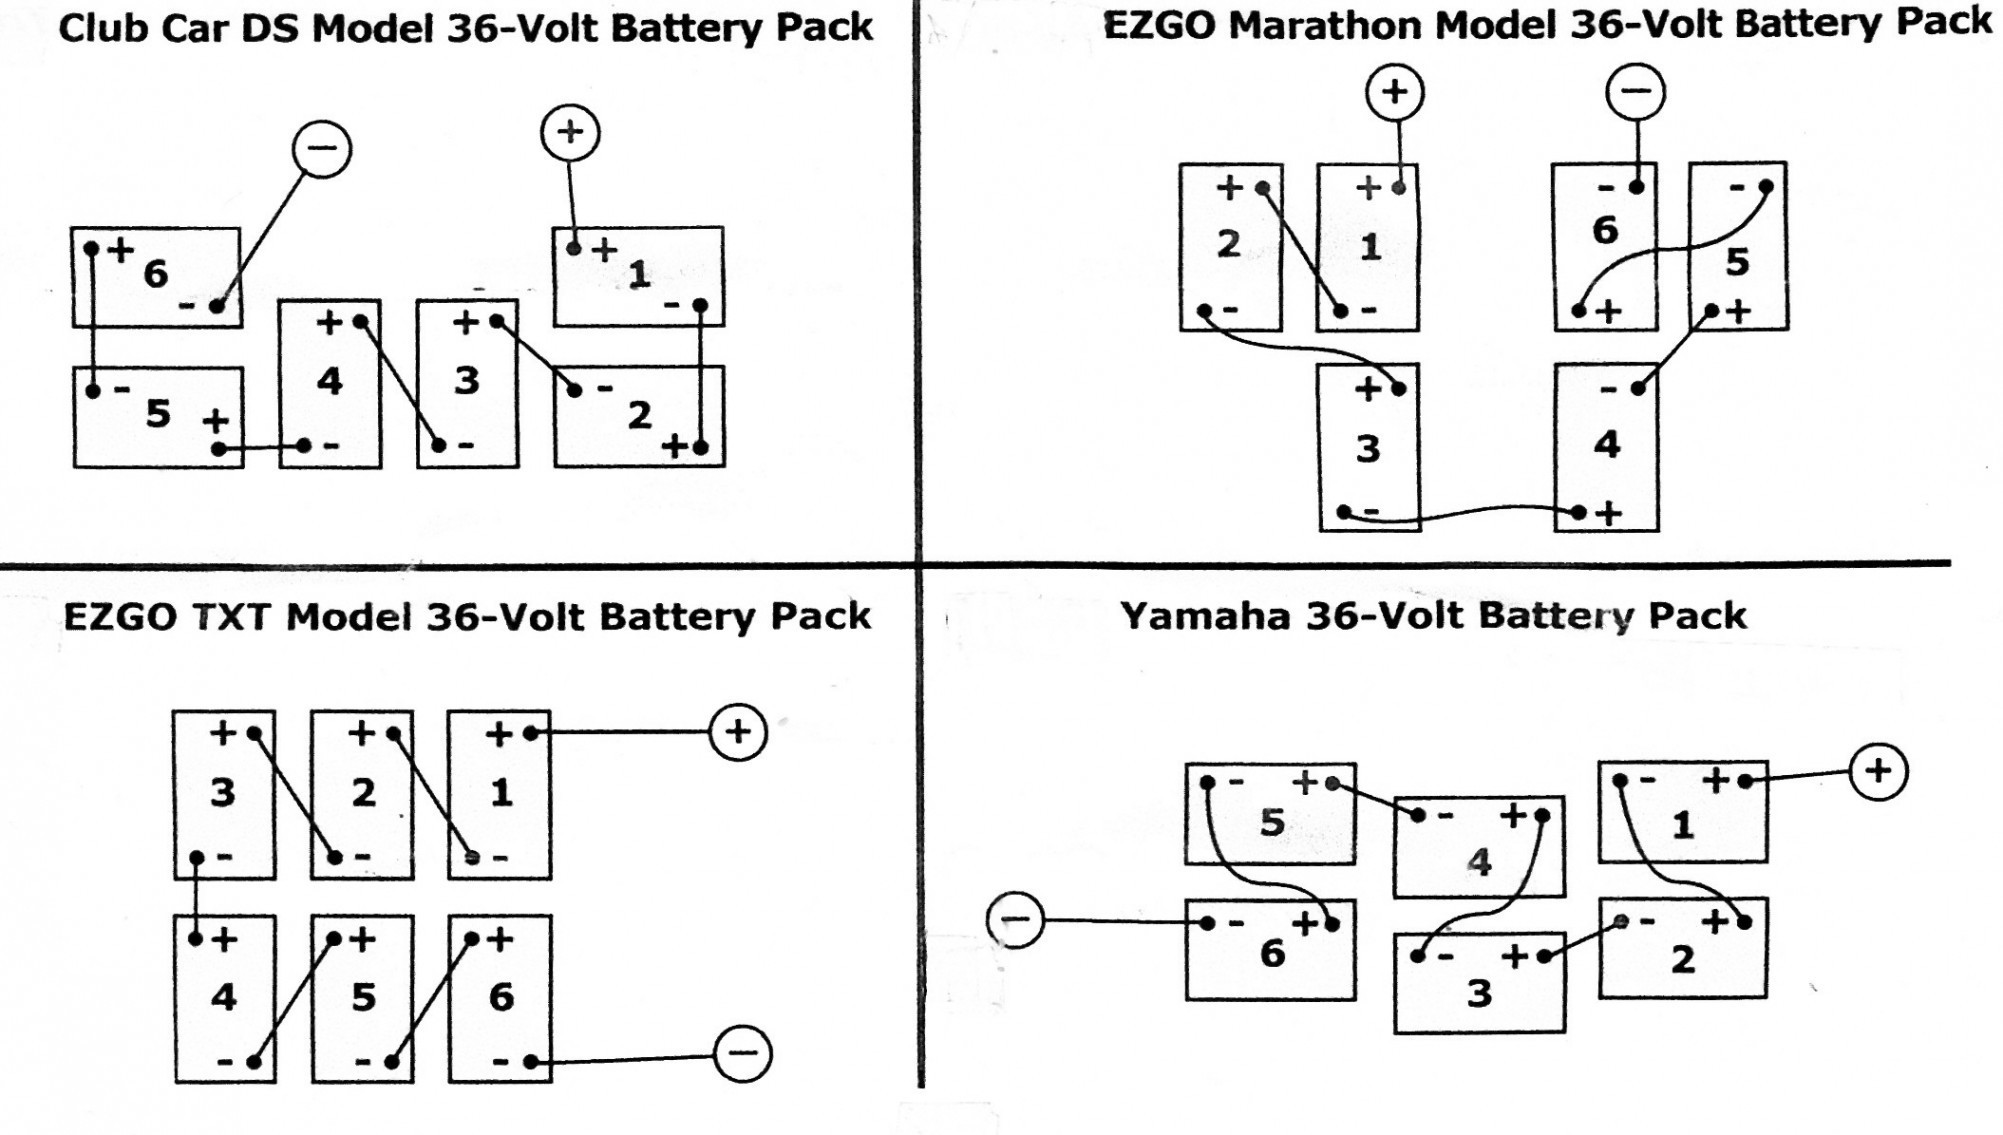 Car Chassis Diagram Ez Go Golf Cart Battery Wiring Diagram New Ez Go Wiring Diagram 36 Of Car Chassis Diagram